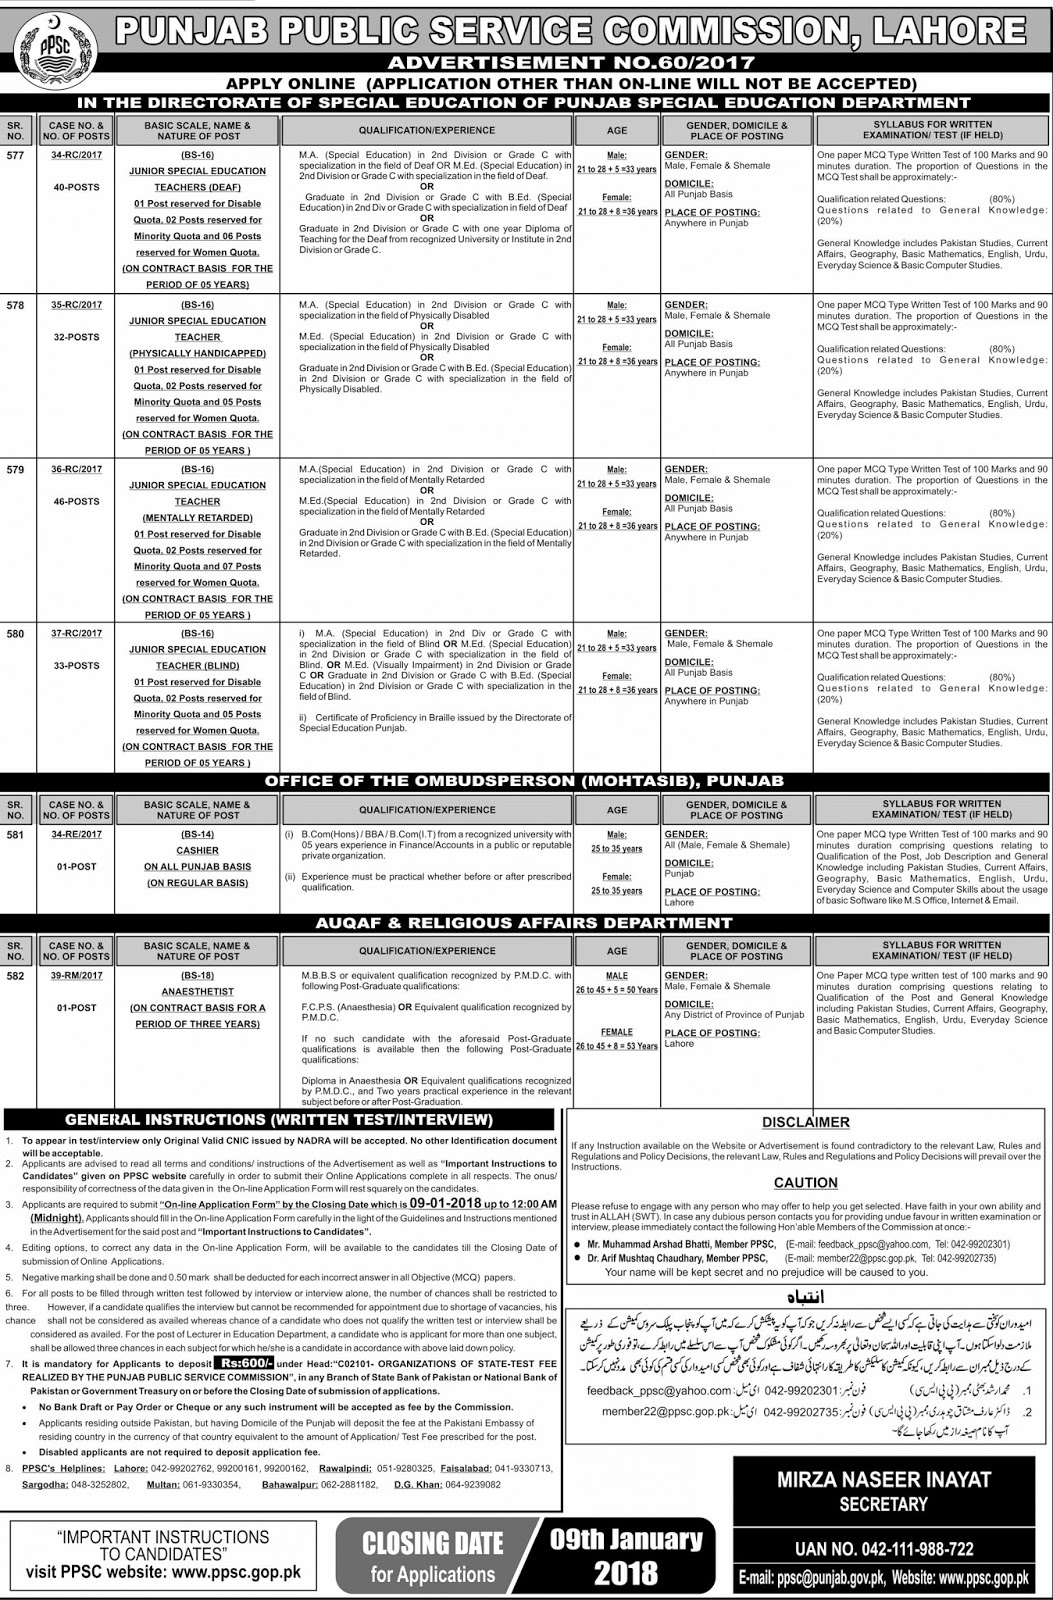 150+ Teachers Jobs in PPSC 2018 Punjab Public Service